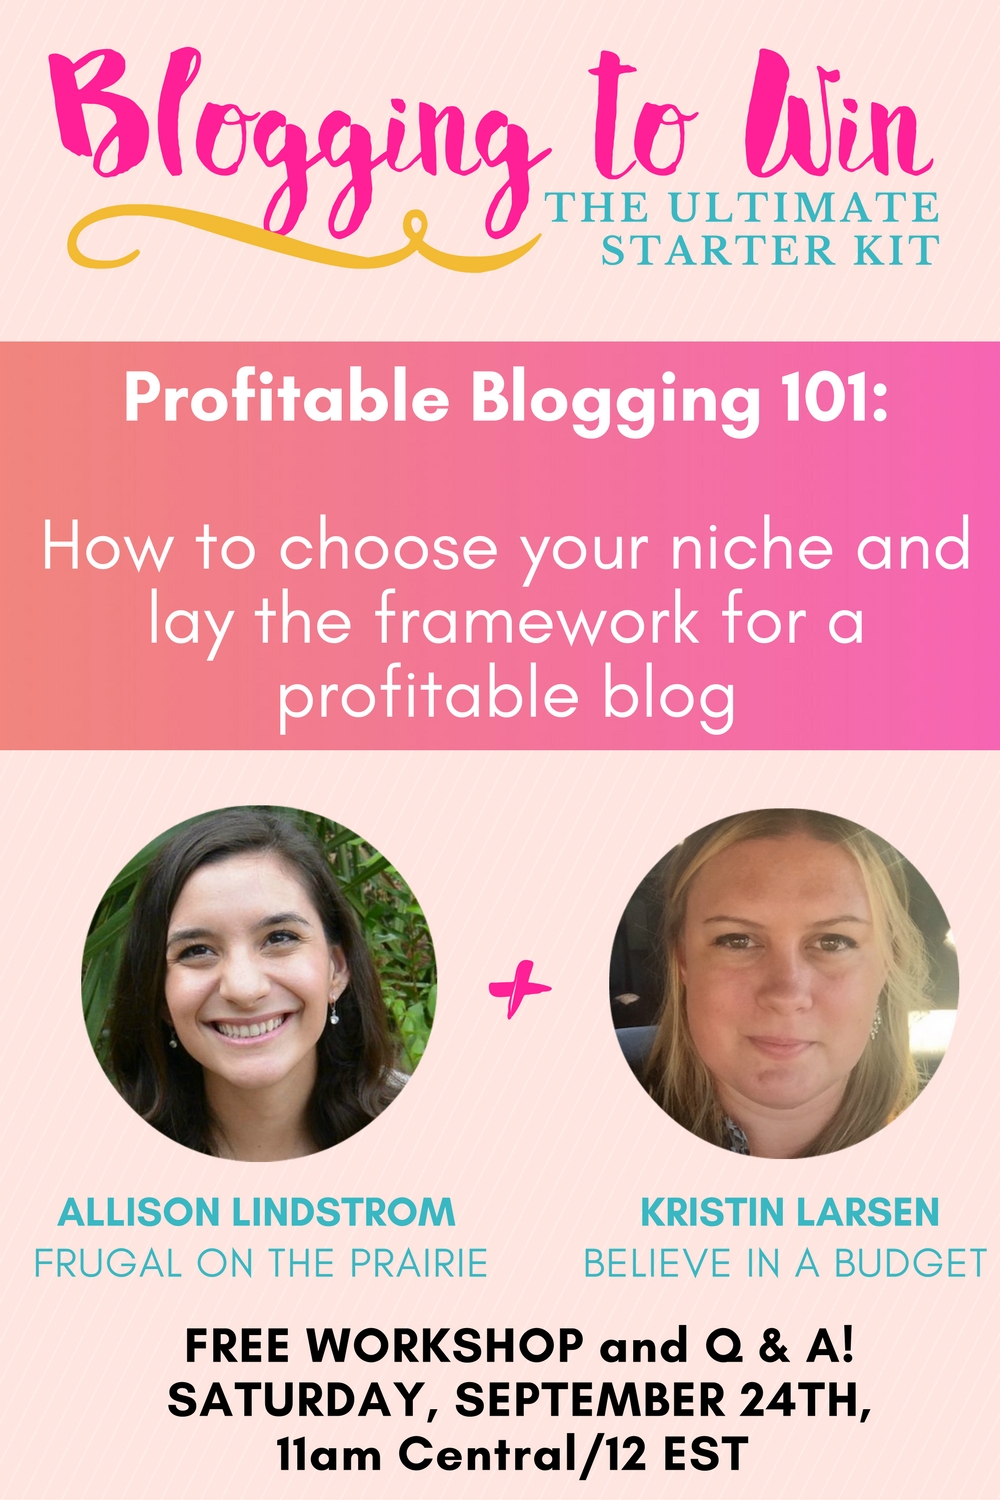 It seems like everyone has a blog nowadays, but you want to build a profitable blog right? My biz bff Kristin (Believe in a Budget) and are hosting a free webinar about laying the framework for a money-making blog and narrowing your niche so you can stand out from the crowd.